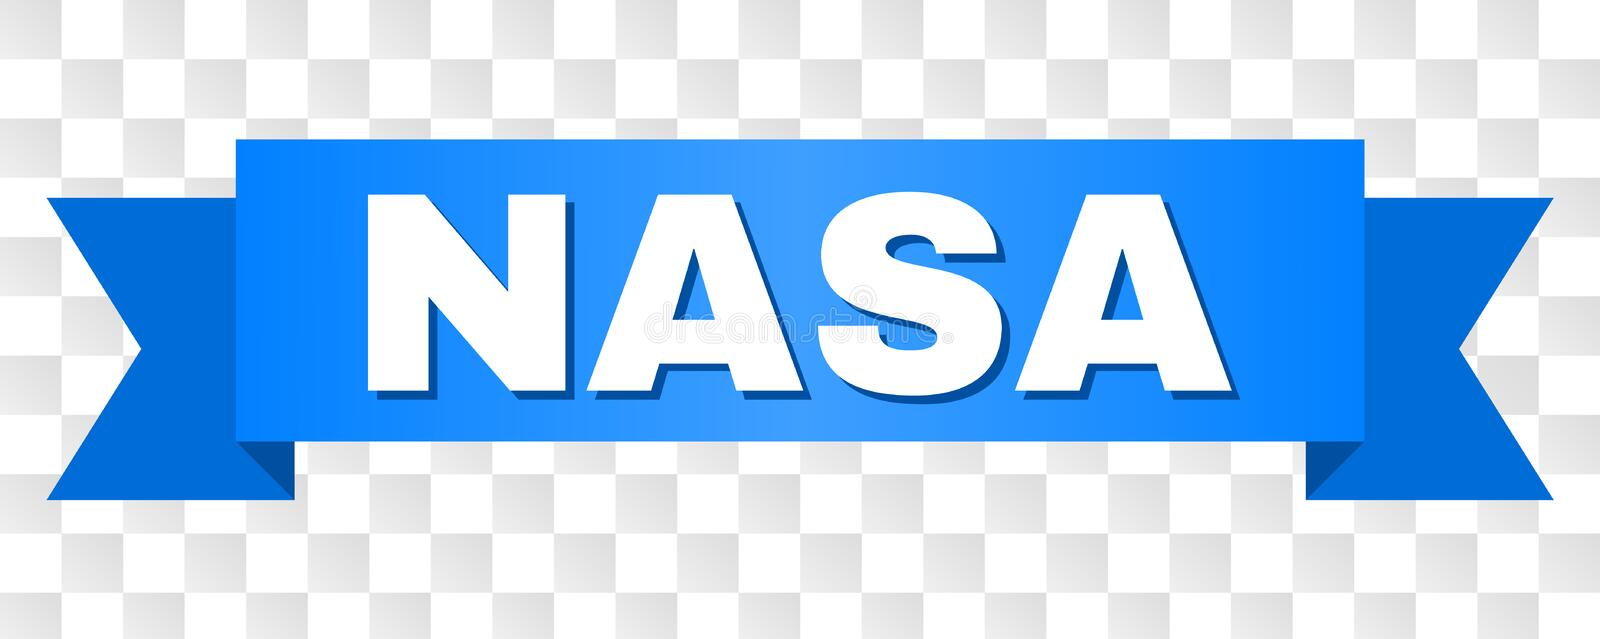 Blue Tape with NASA Title. NASA text on a ribbon. Designed with white caption and blue stripe. Vector banner with NASA tag on a transparent background royalty free illustration